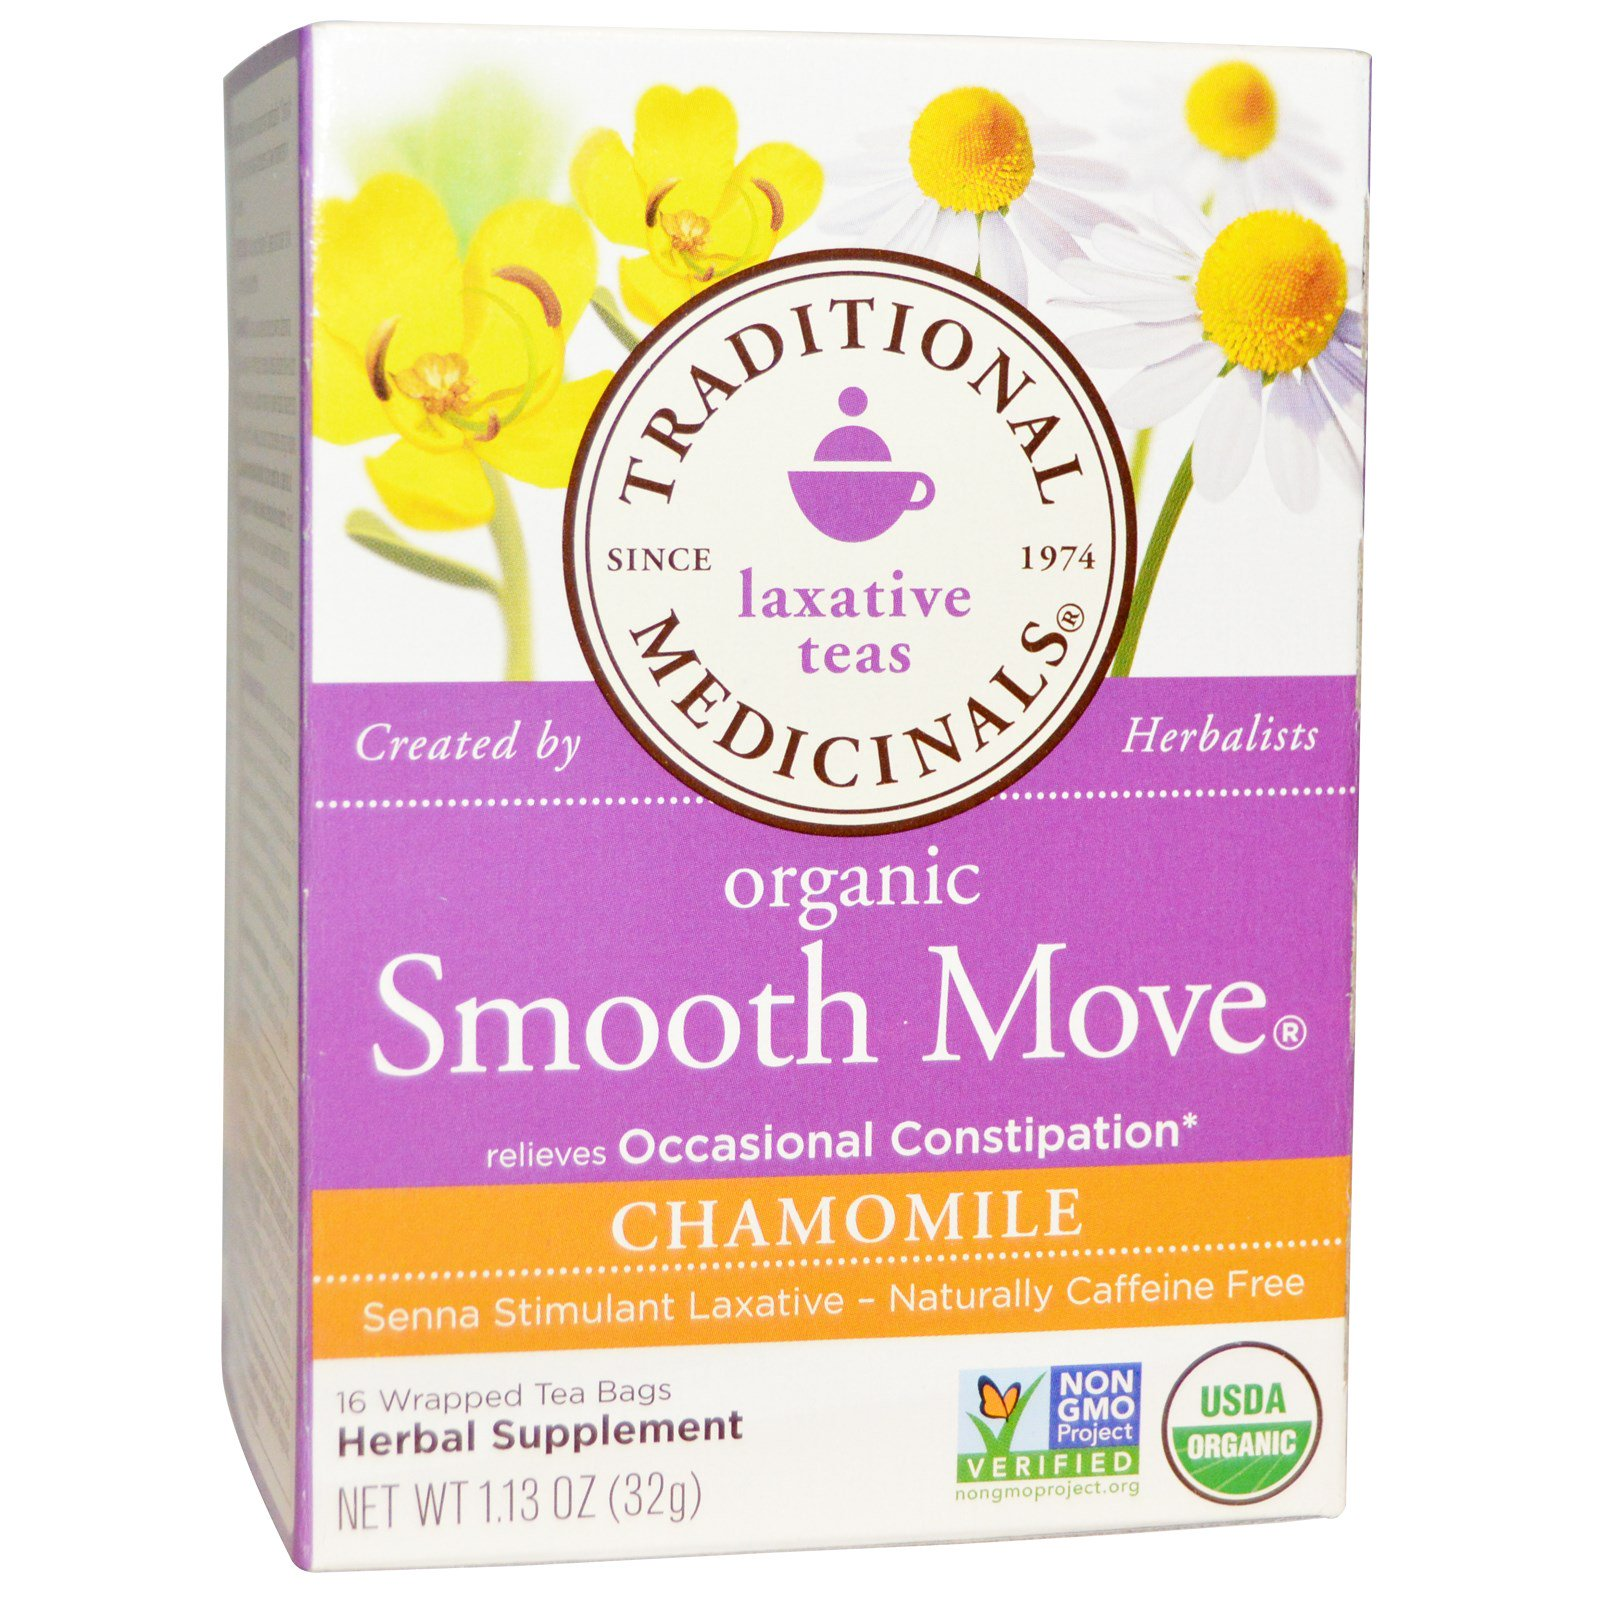 Organic Smooth Move Laxative Tea Weight Loss Berry Blog